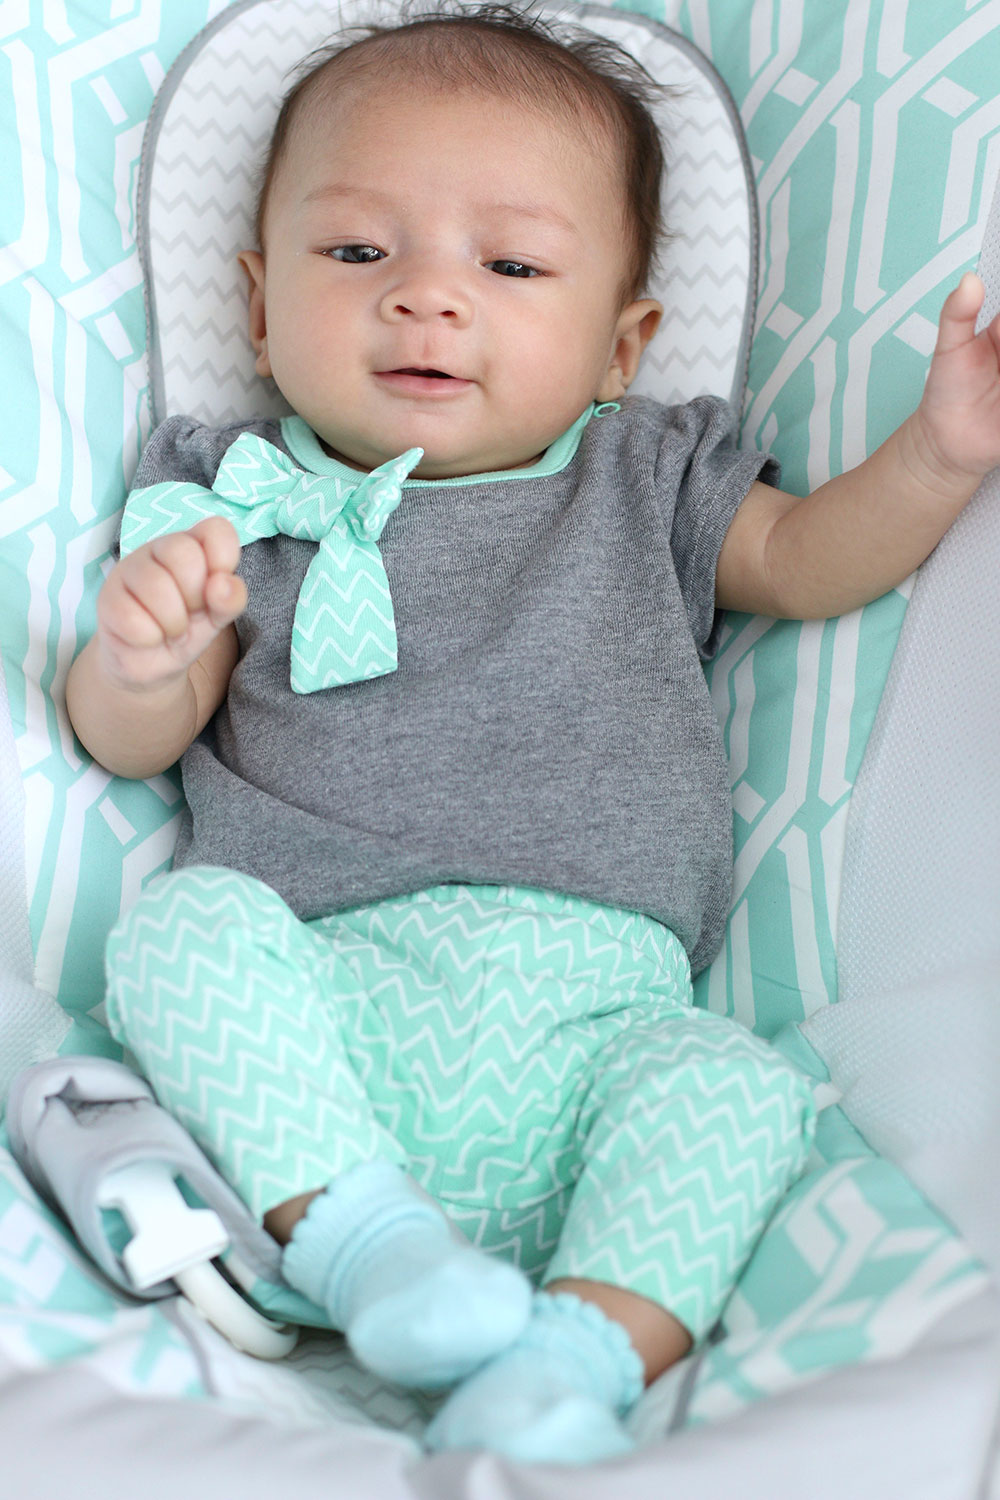 connor-claire-mint-green-outfit